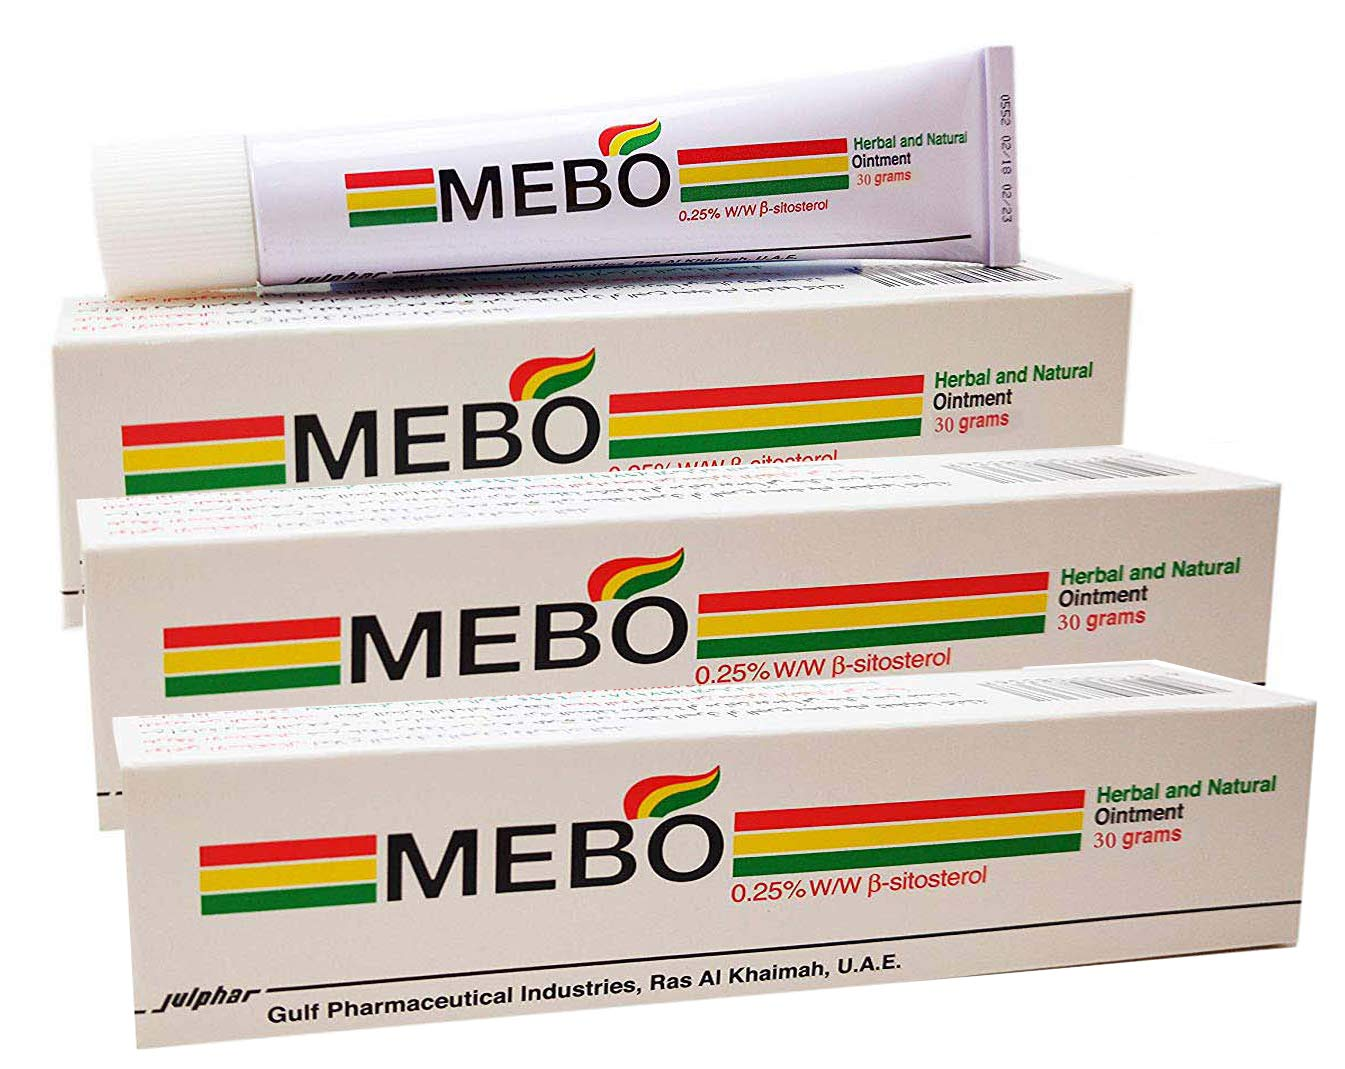 MEBO Burn Fast Relief Pain Cream Skin Healing Ointment Wound & Scar No Marks Care Fast First Aid Health Beauty Care (3 Tubes x 30 grams)